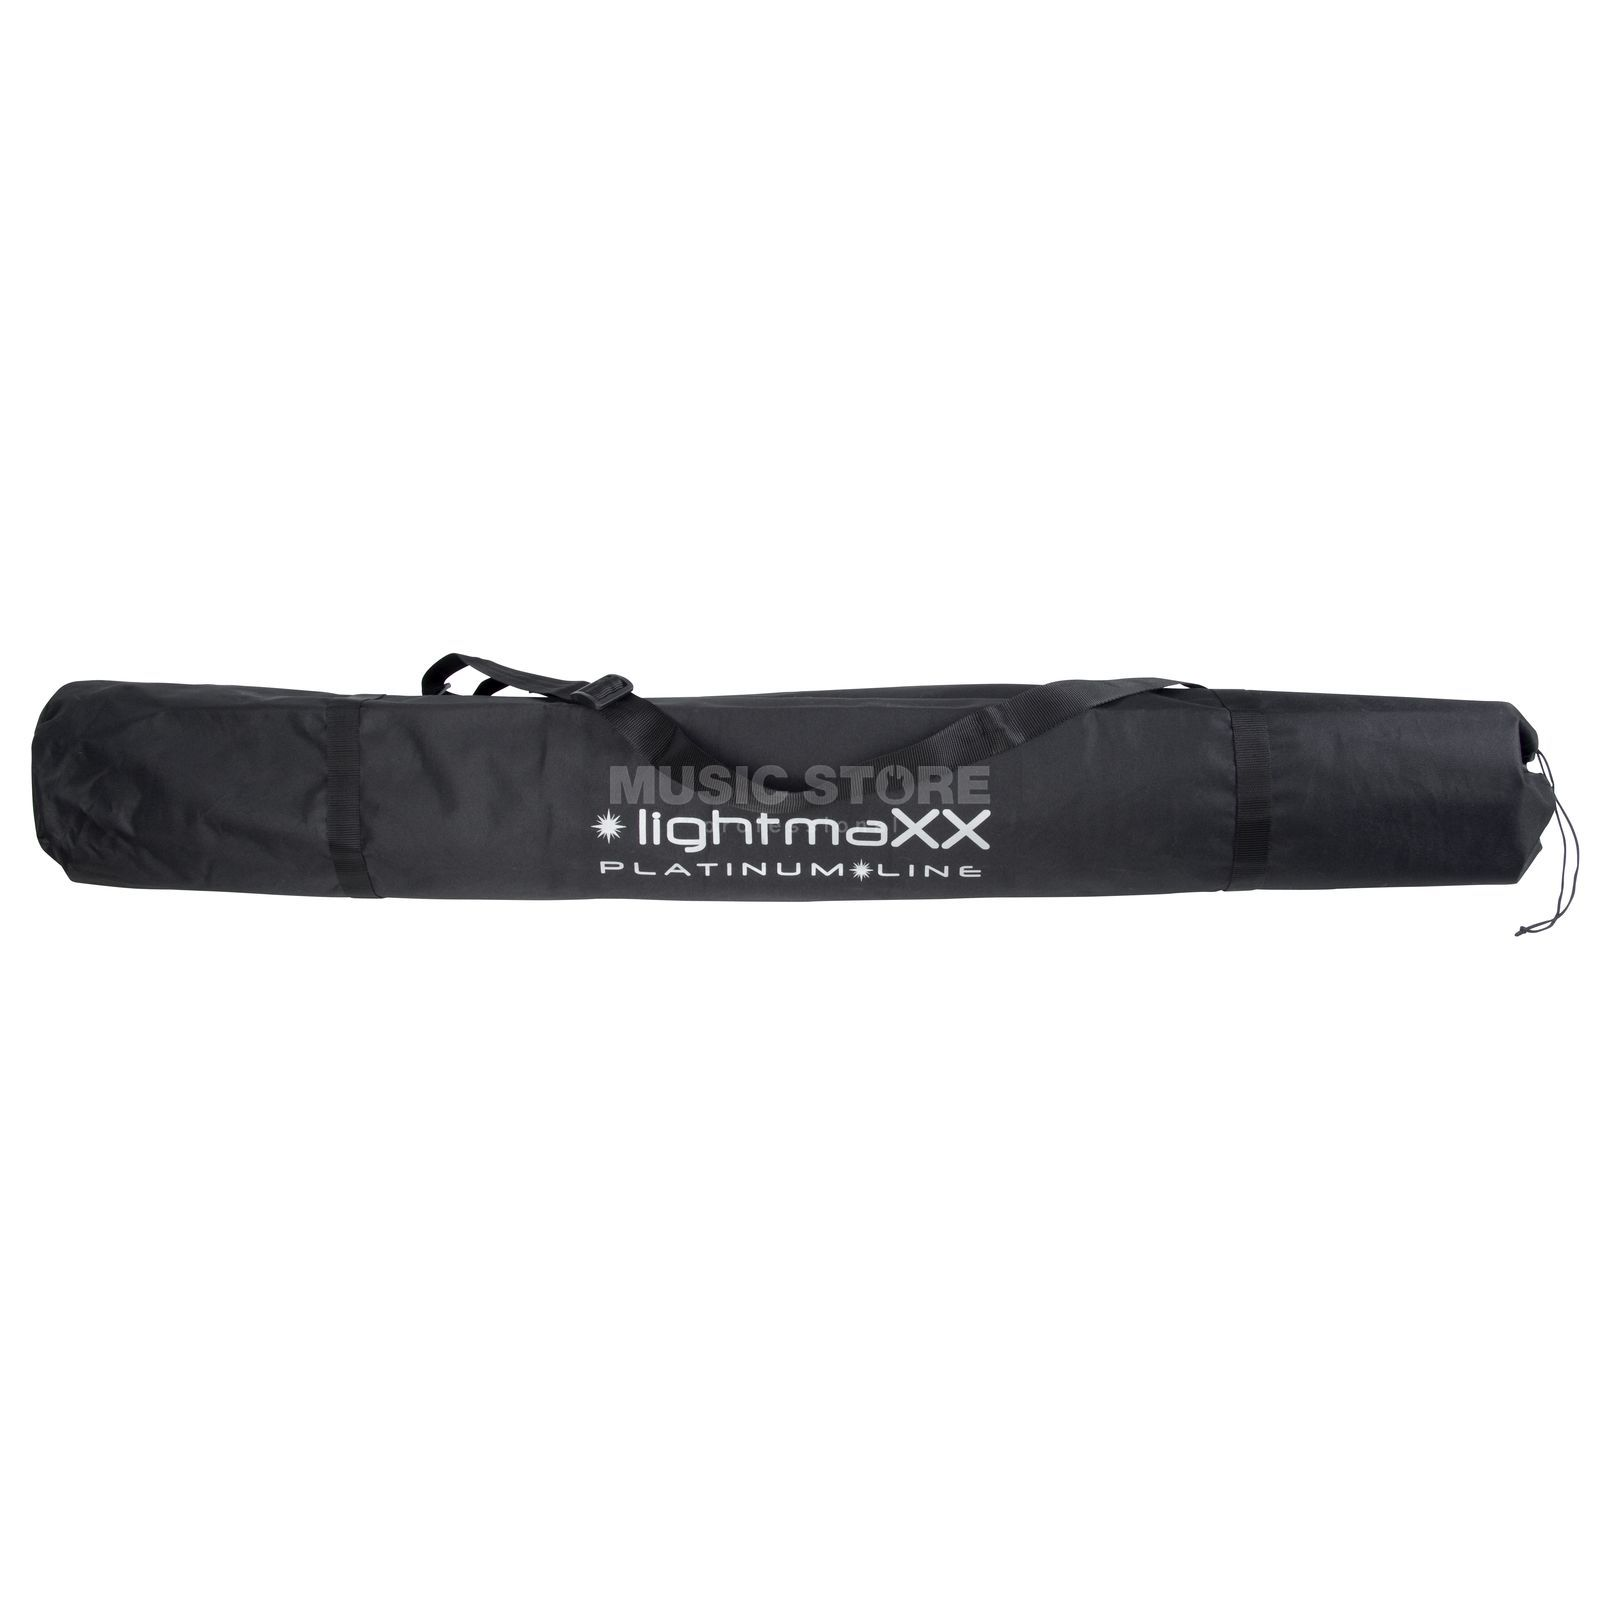 lightmaXX light stand bag 1450x200mm, Black Produktbillede